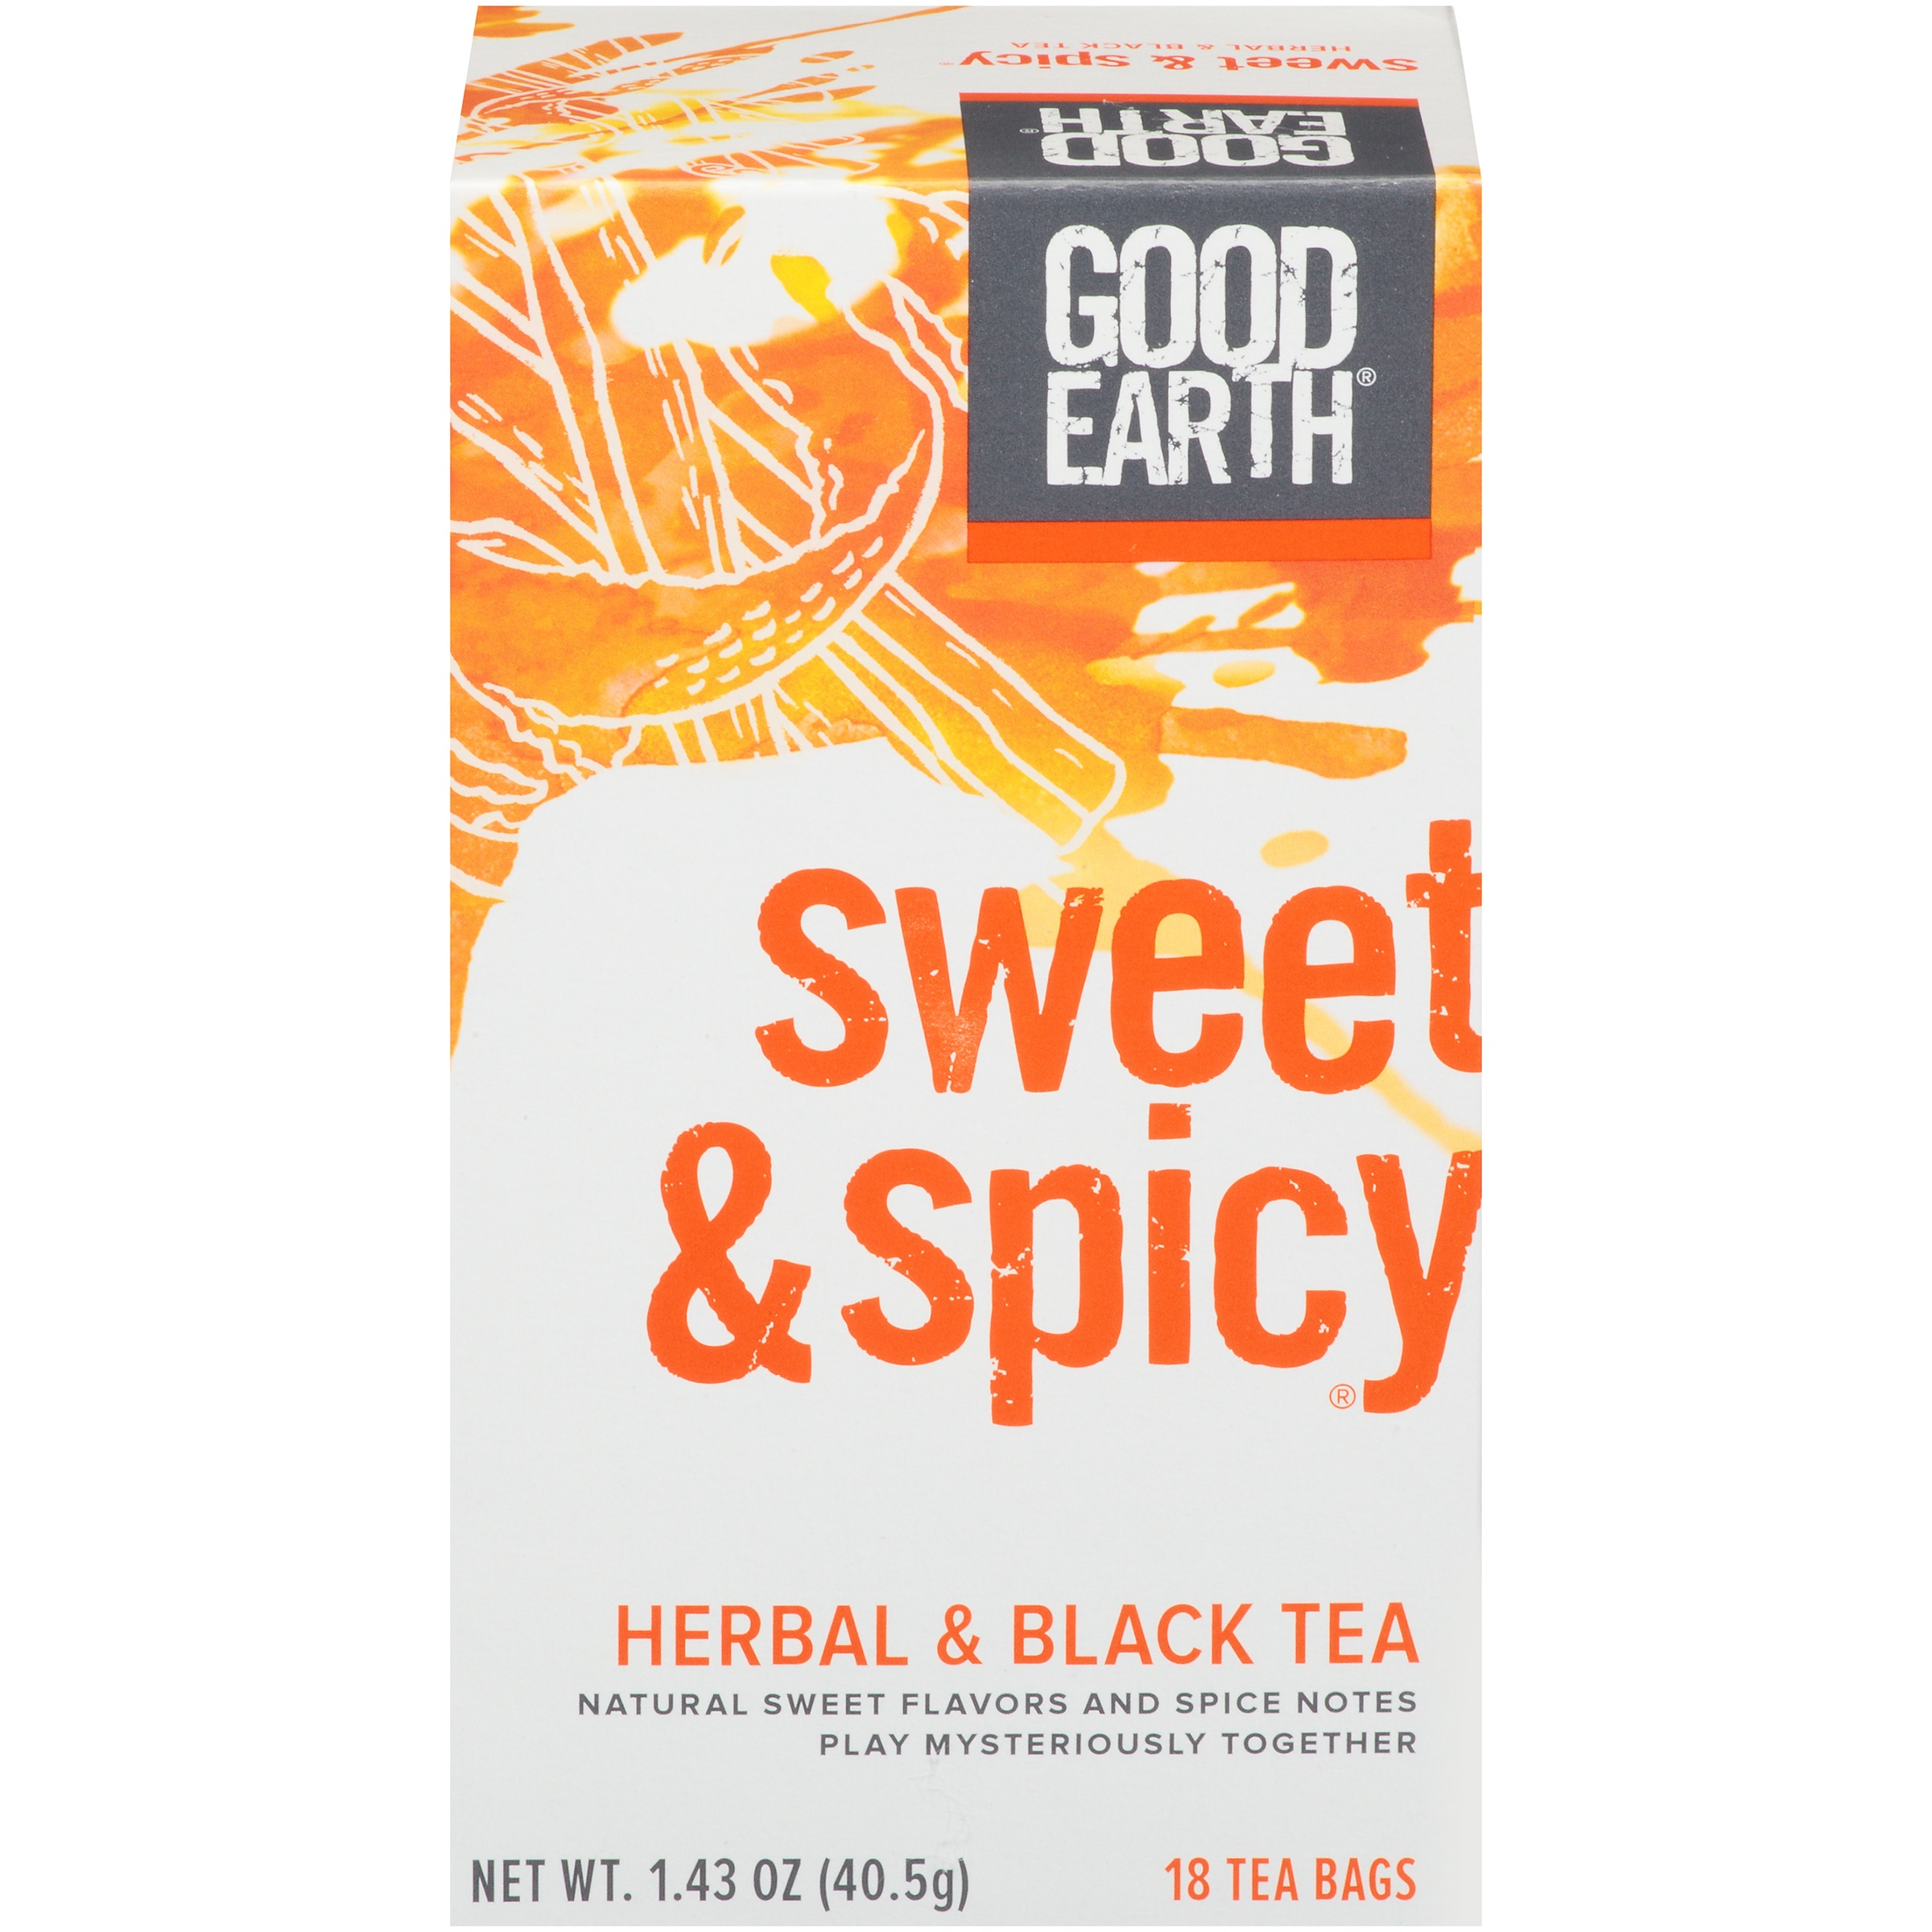 (3 Boxes) Good Earth Herbal & Black Tea, Sweet & Spicy, Tea Bags, 18 Ct